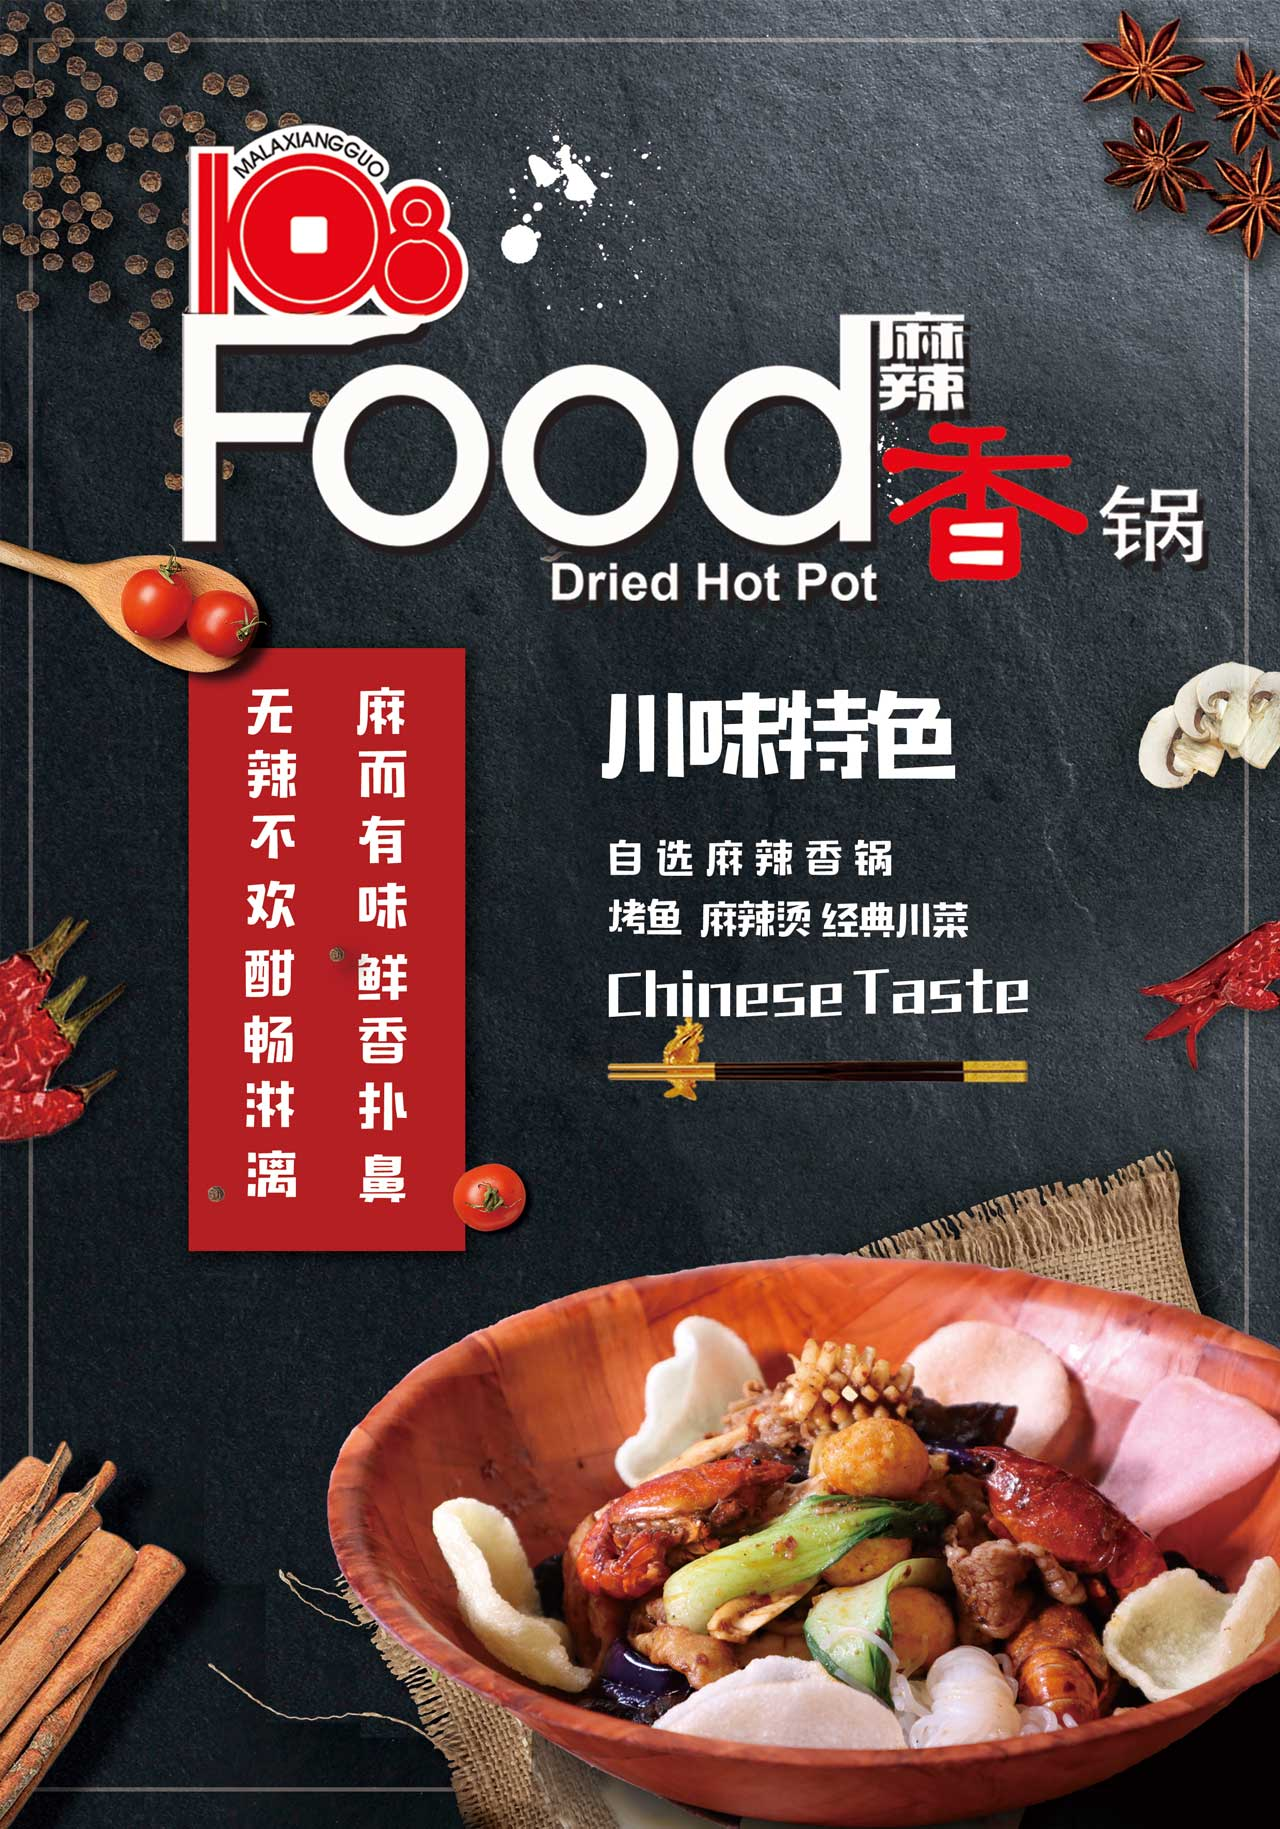 108 Food Dried Hot Pot Chinese Restaurant In New York Order Chinese Food Online Dine In Delivery And Takeout